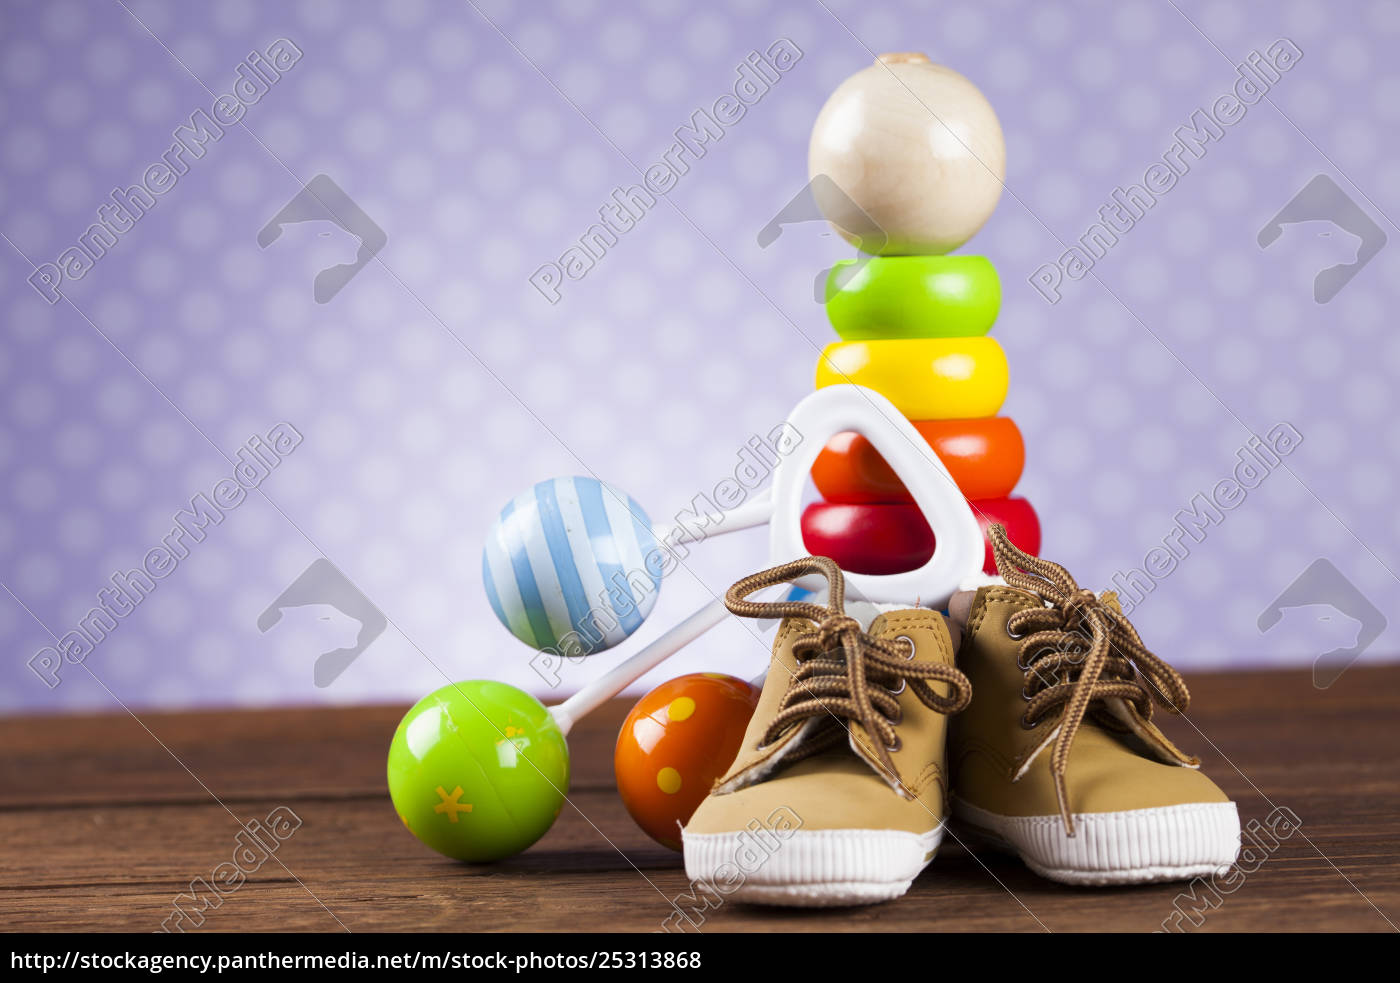 stuffed, baby, toys, on, wooden, background - 25313868